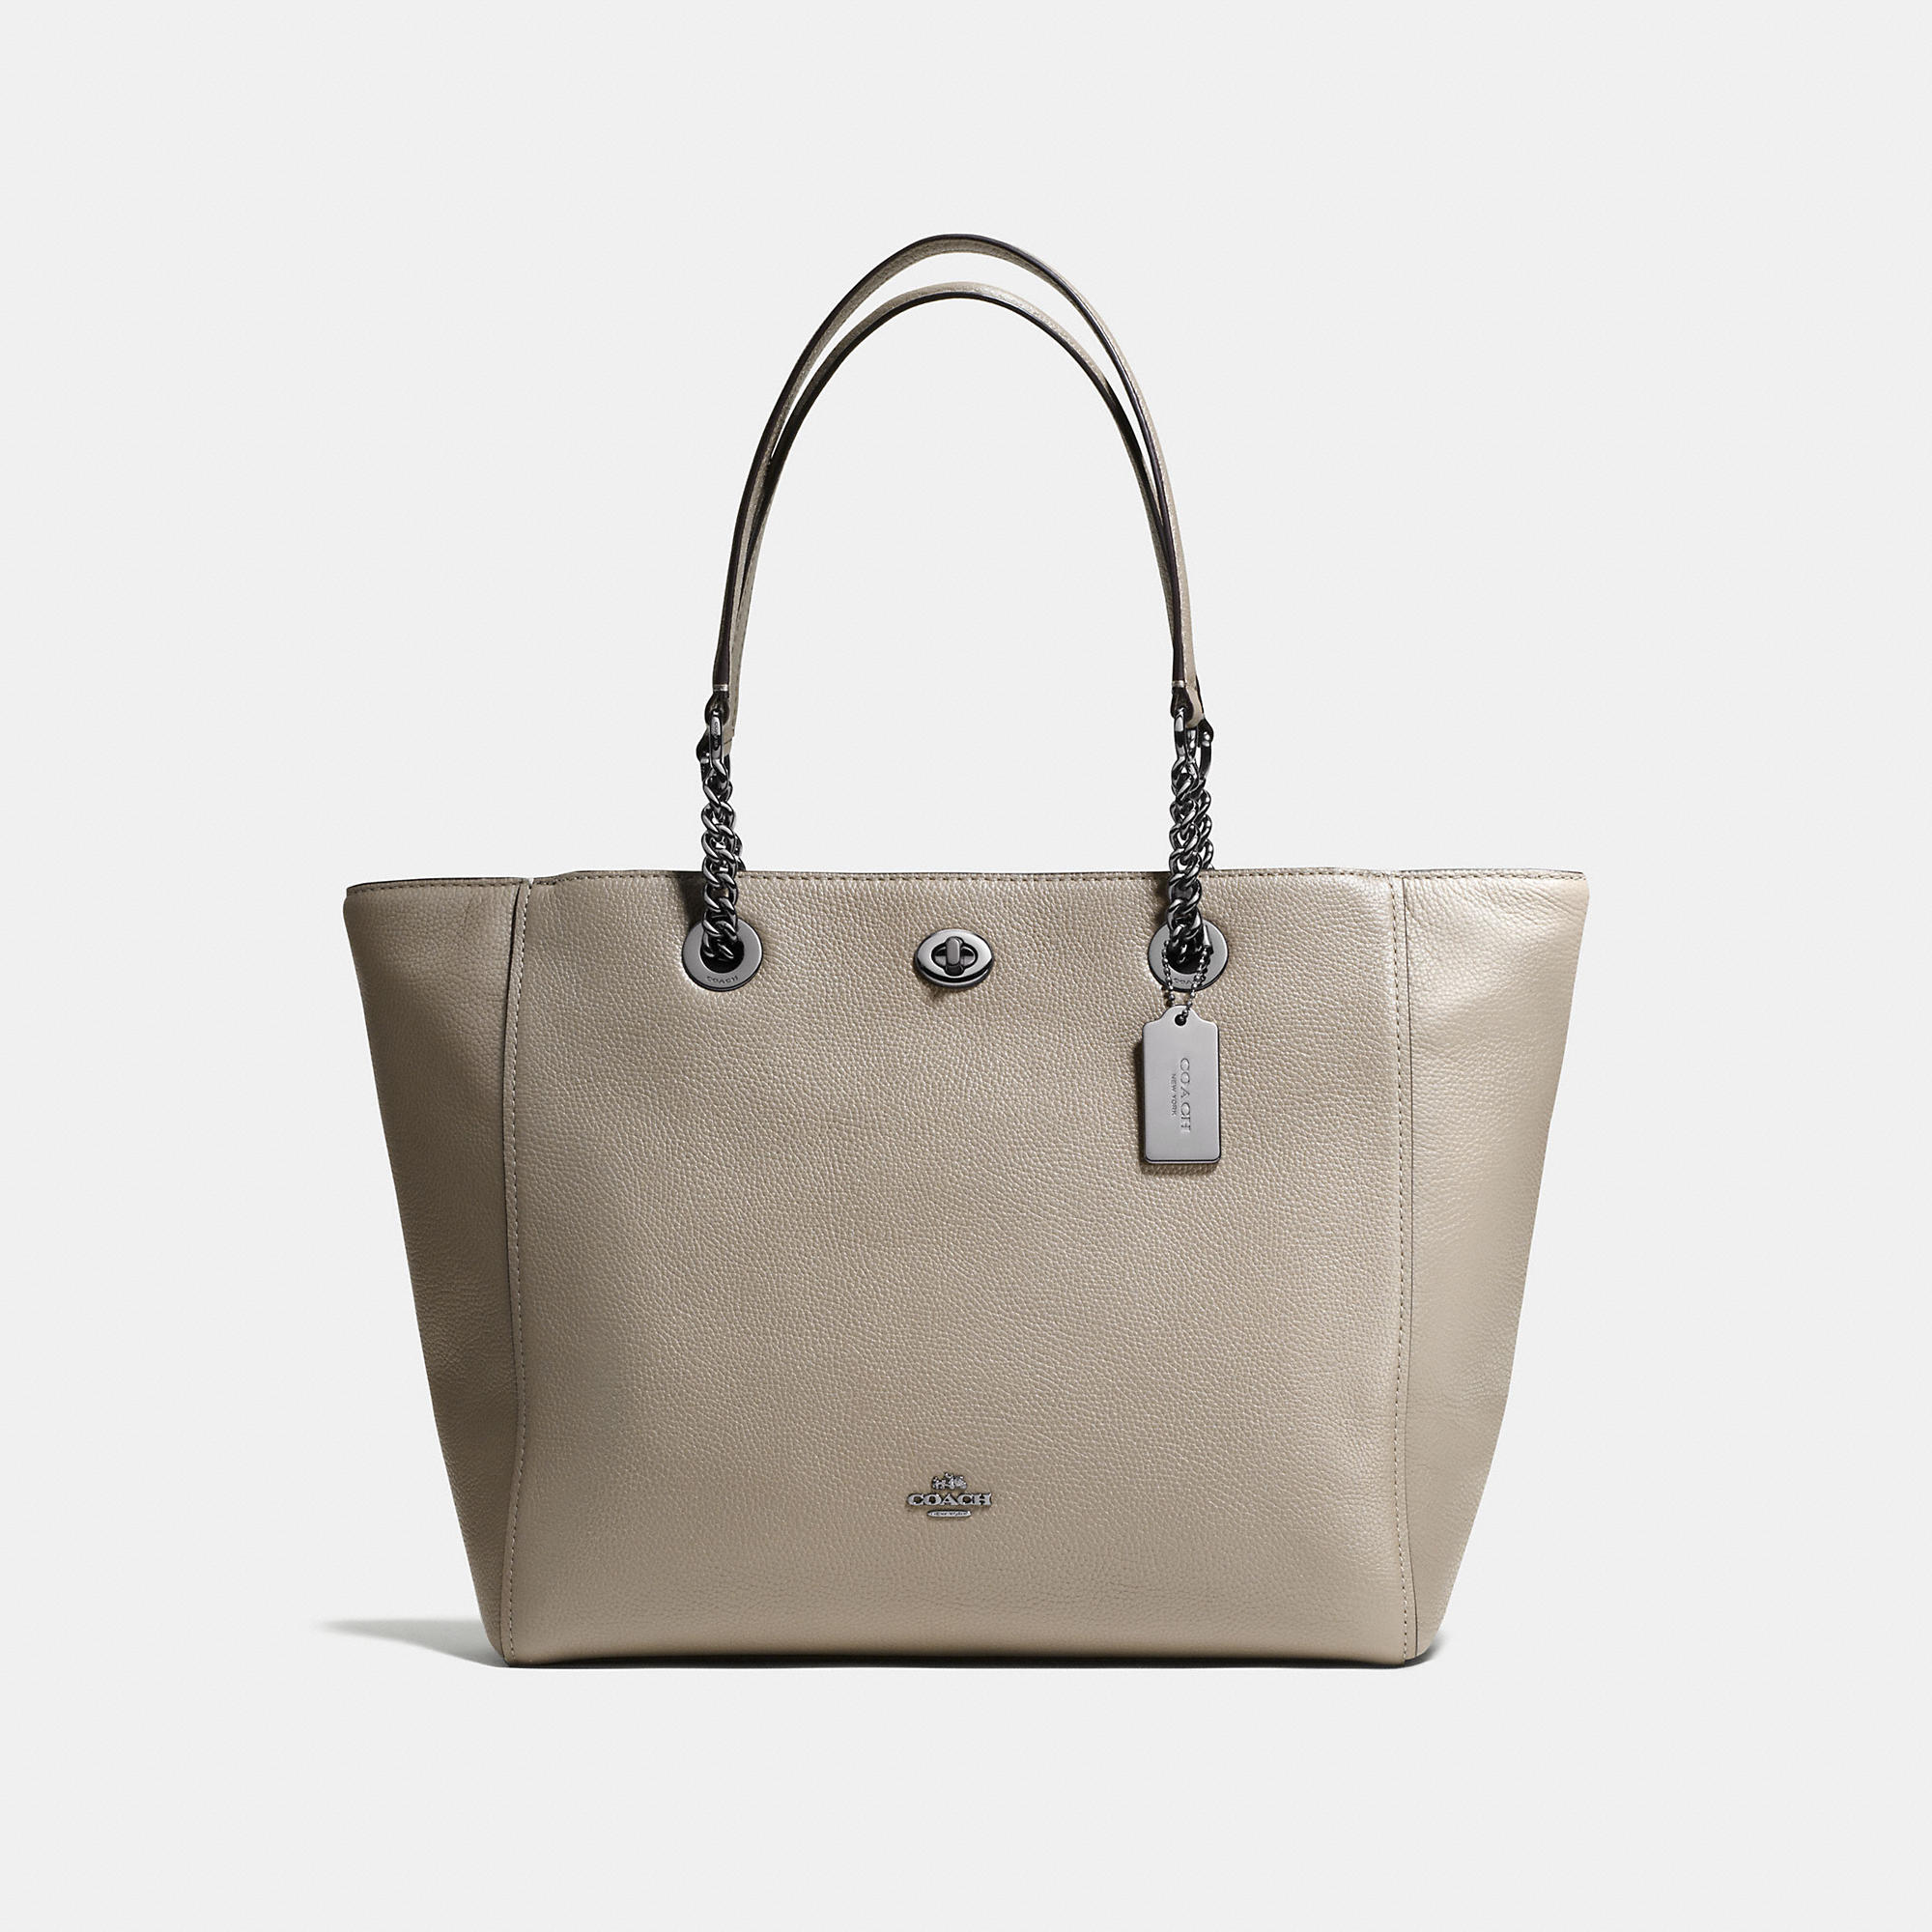 Coach Turnlock Chain Tote In Polished Pebble Leather